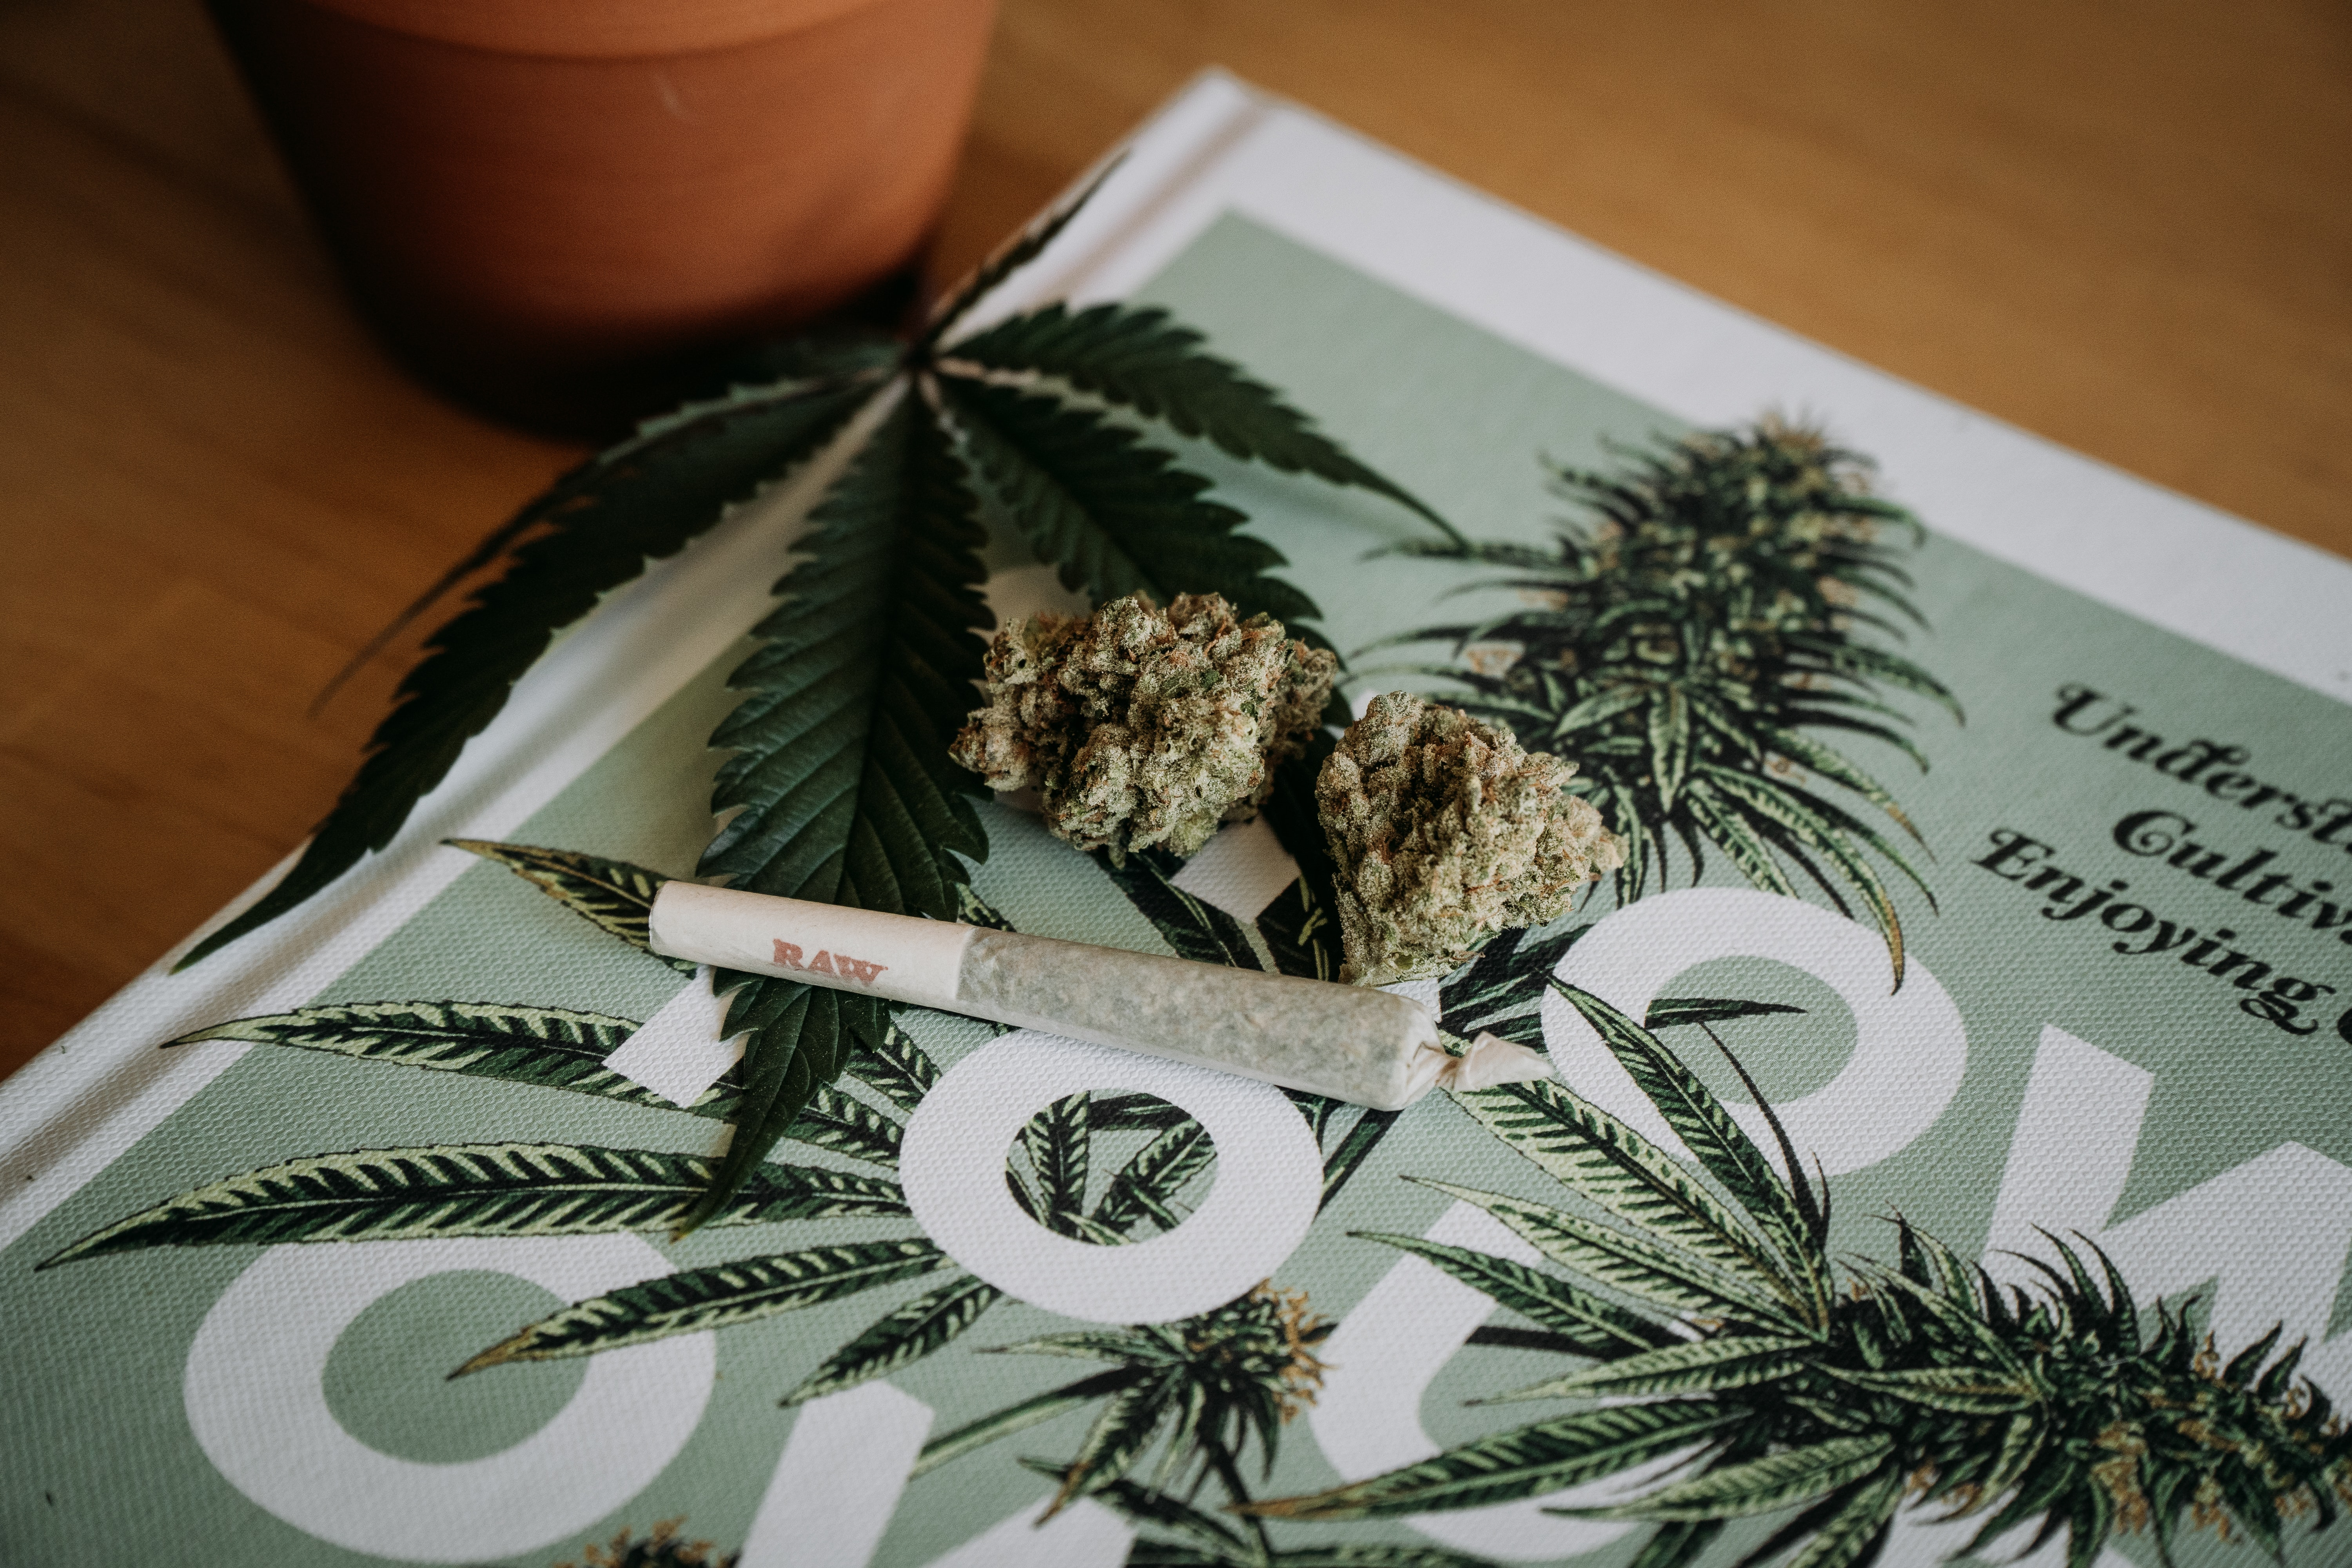 How Much is an Ounce of Weed?   Weed Measurements & Costs in Ontario